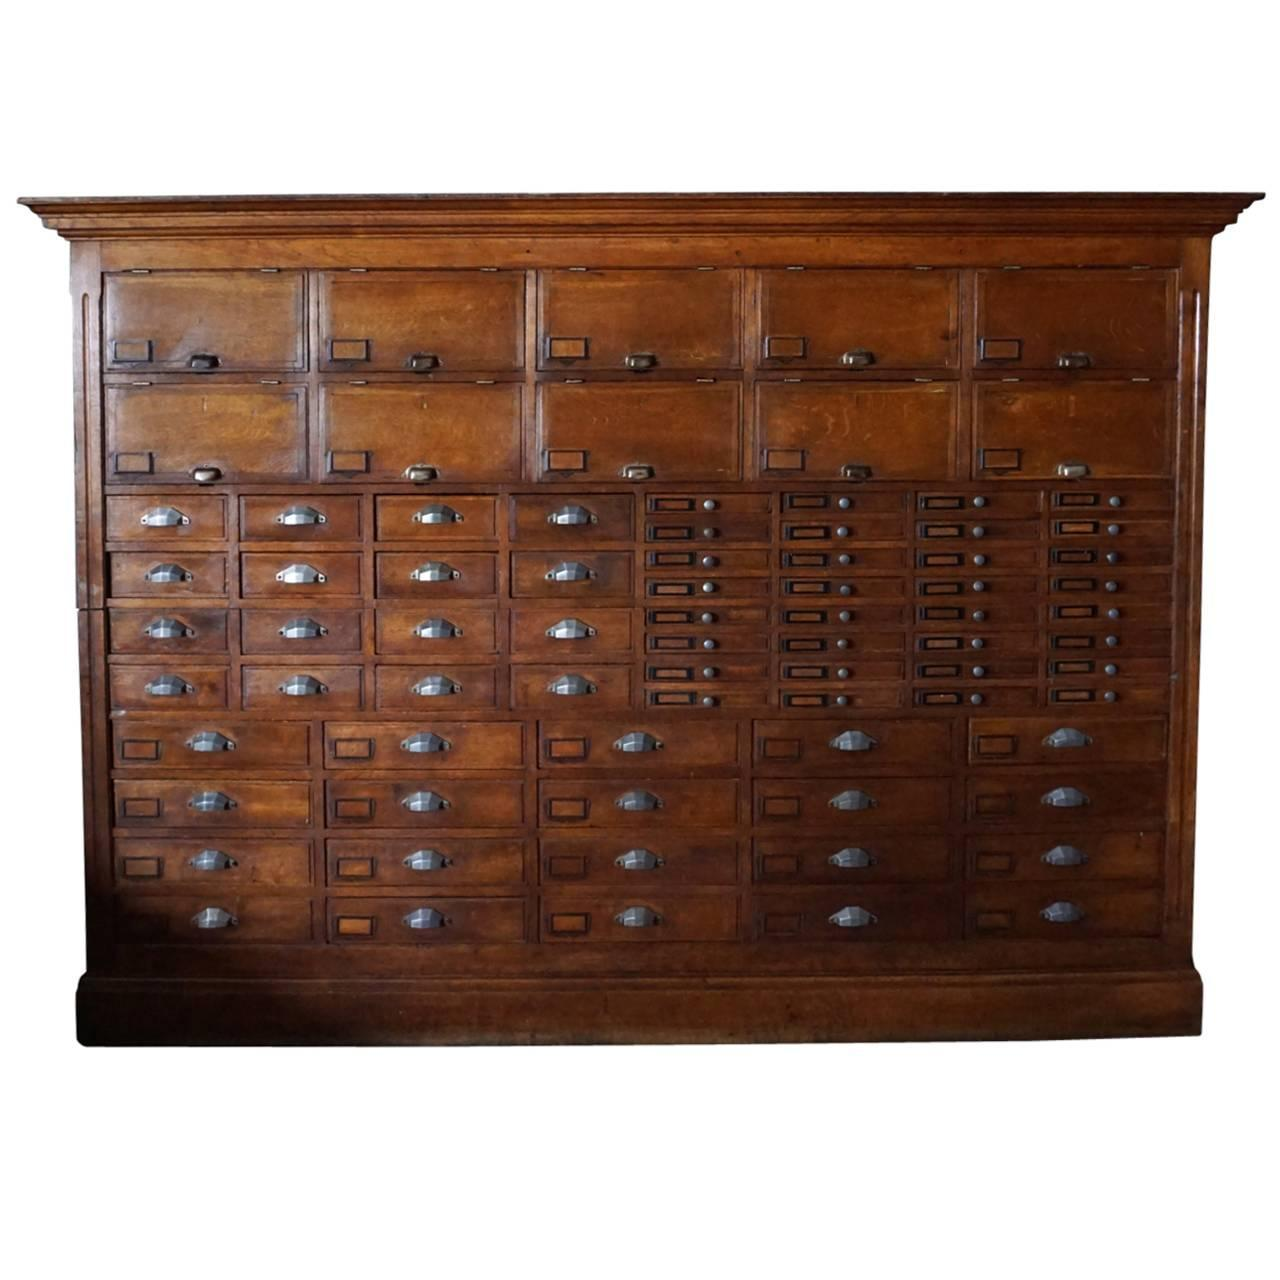 Marvelous French Oak Jewelers Or Apothecary Cabinet, 1930s At 1stdibs